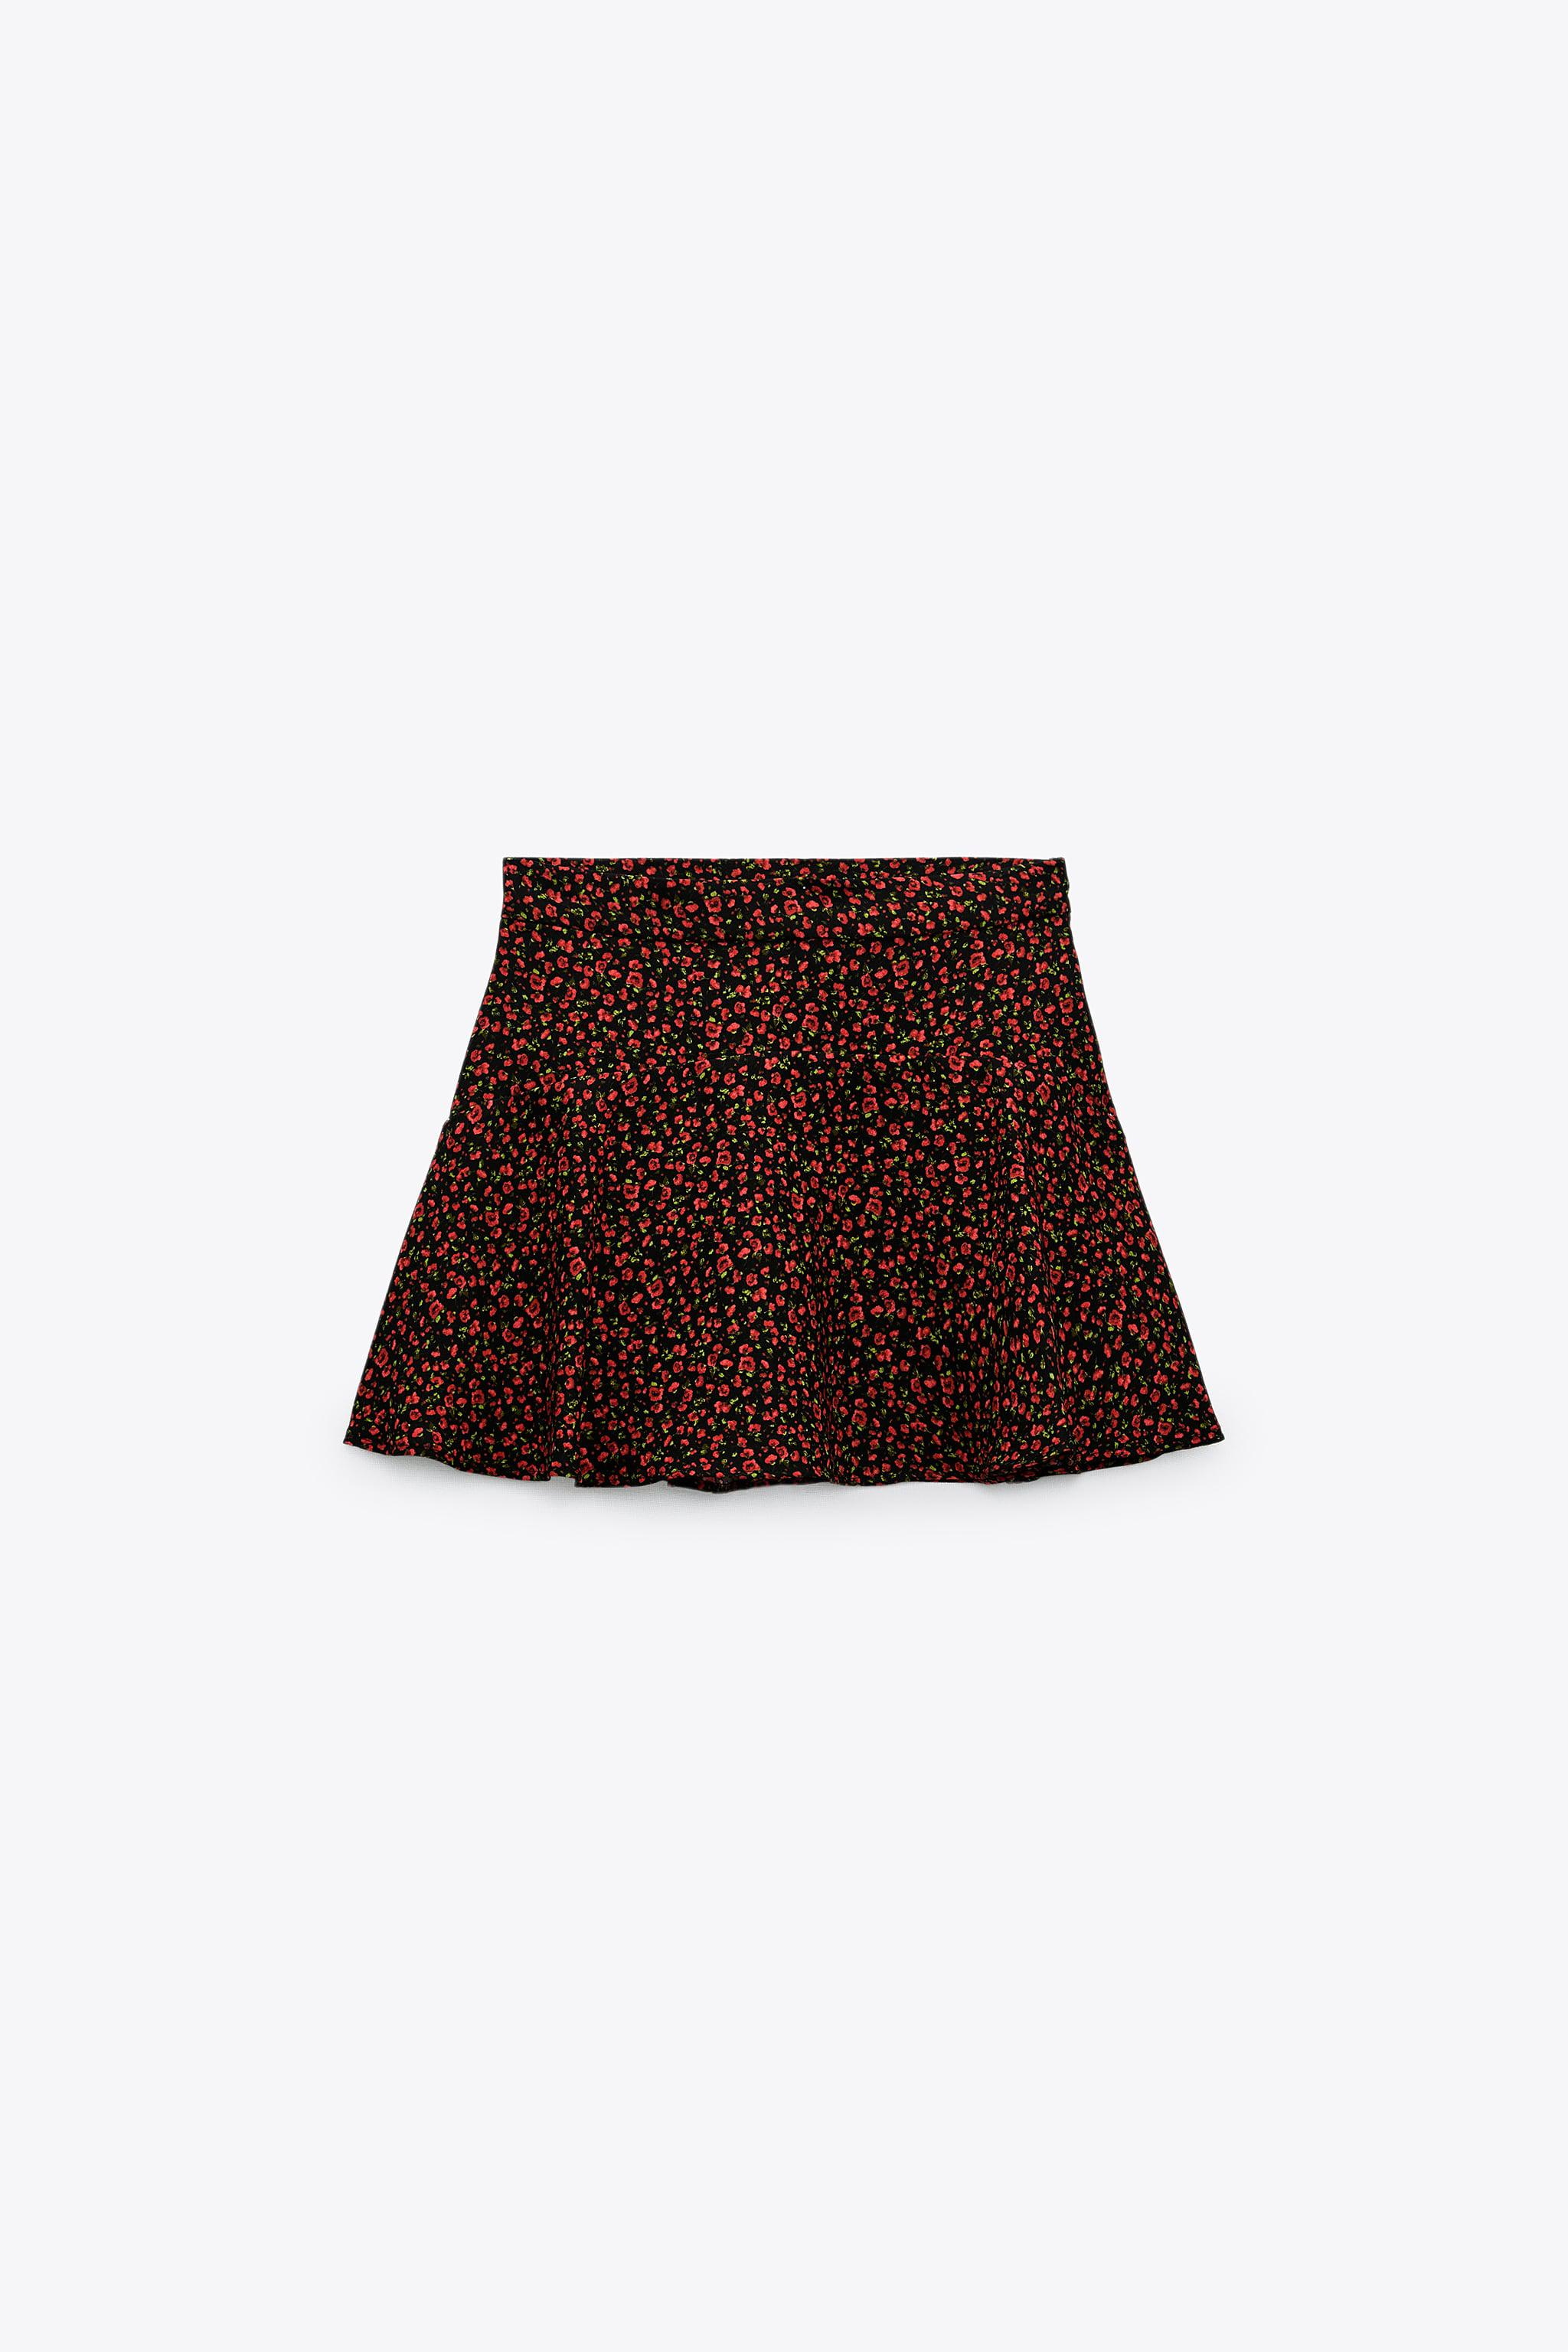 PRINT PANTS WITH SKIRT FRONT 5